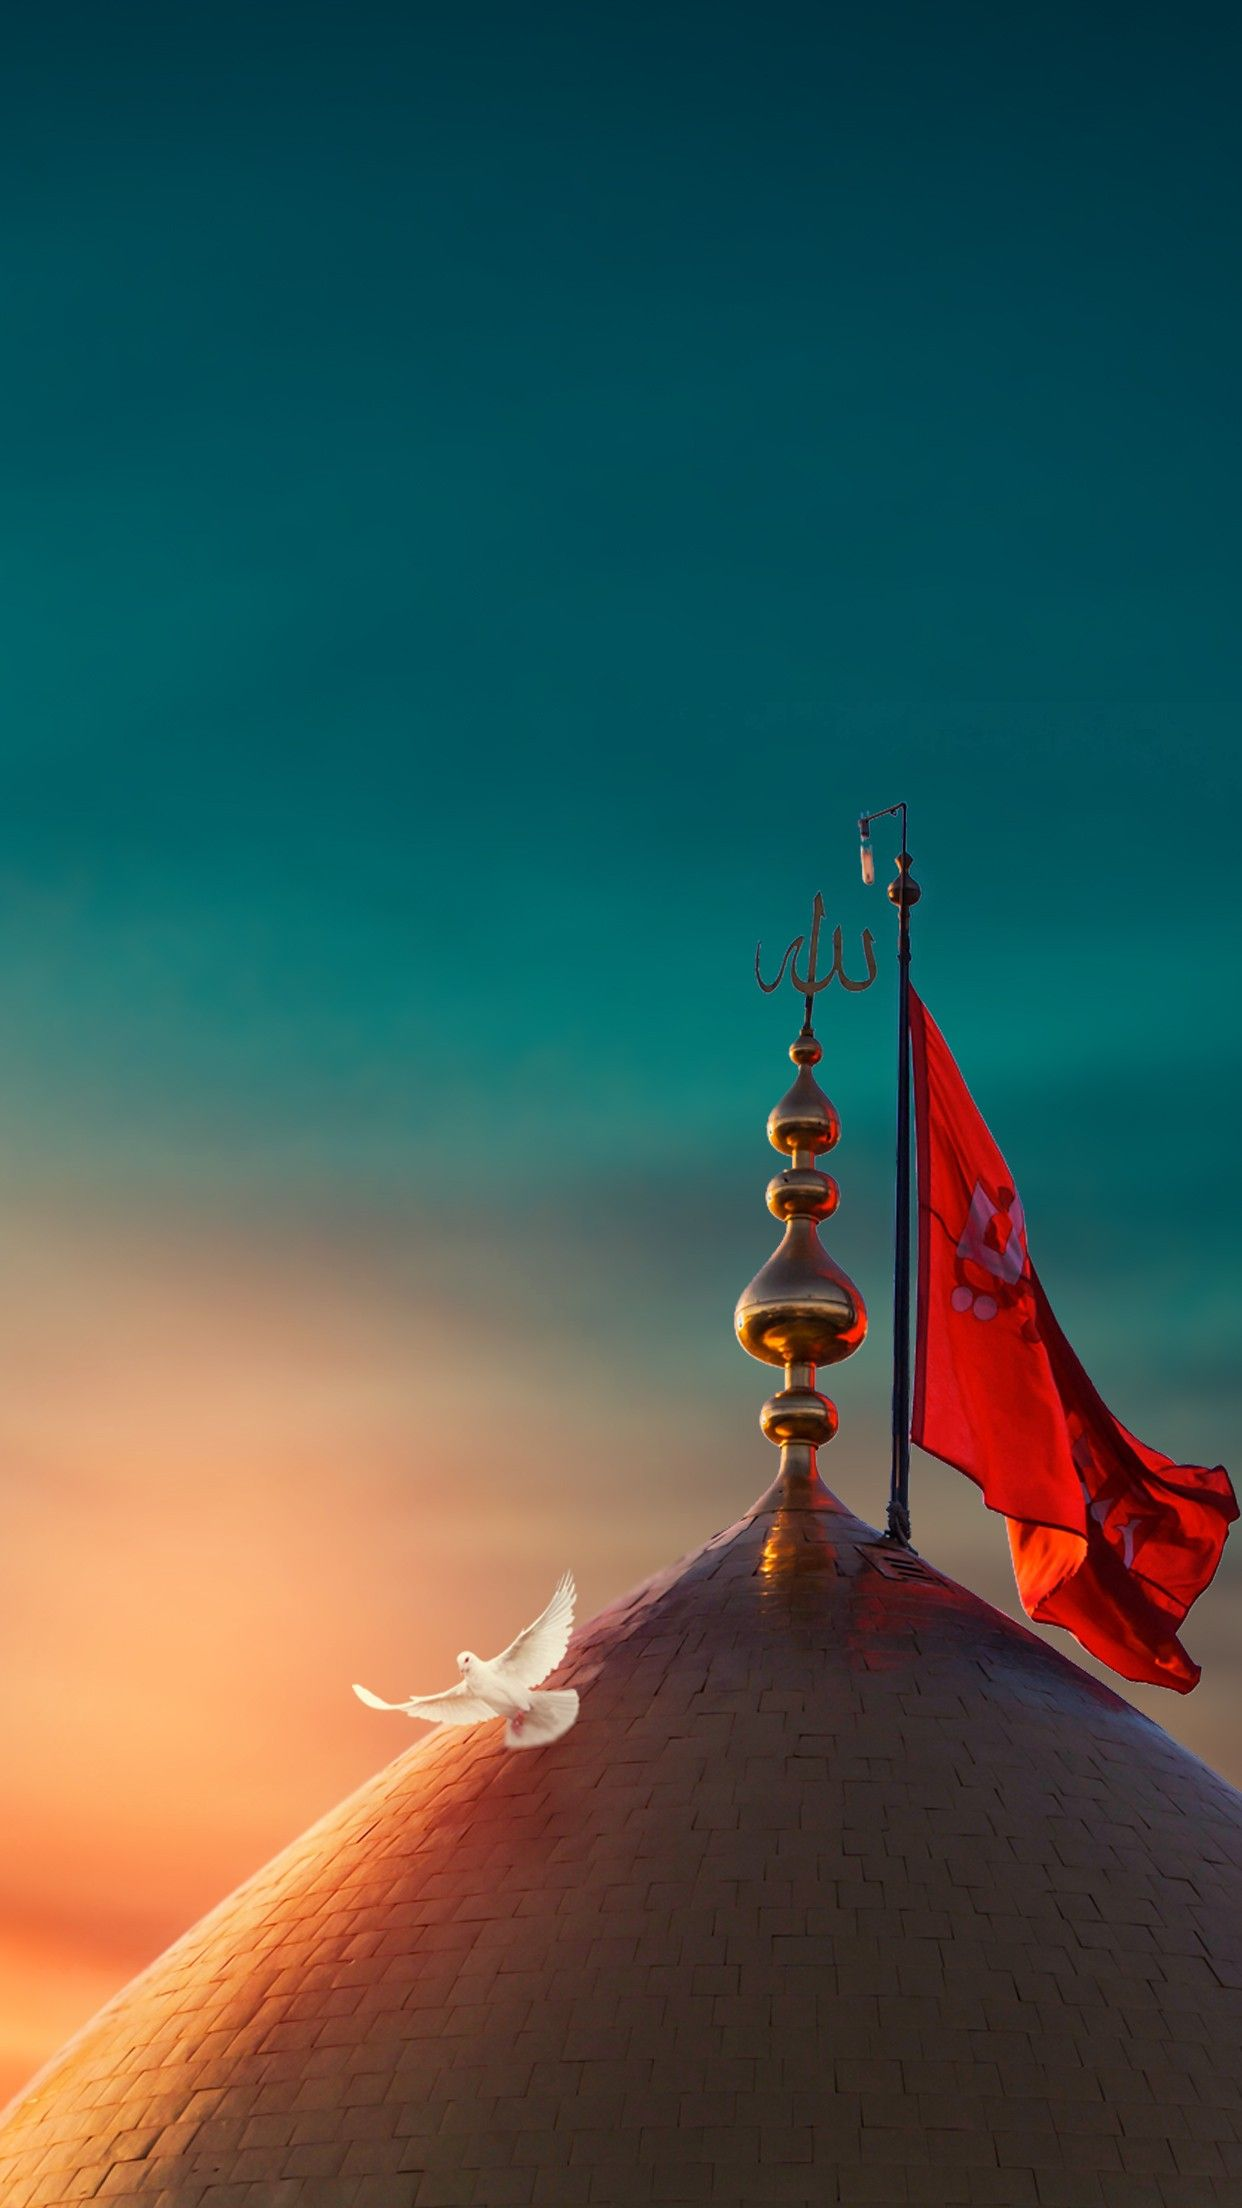 Maula Ali Shrine Wallpaper: Imam Hussain Karbala, Imam